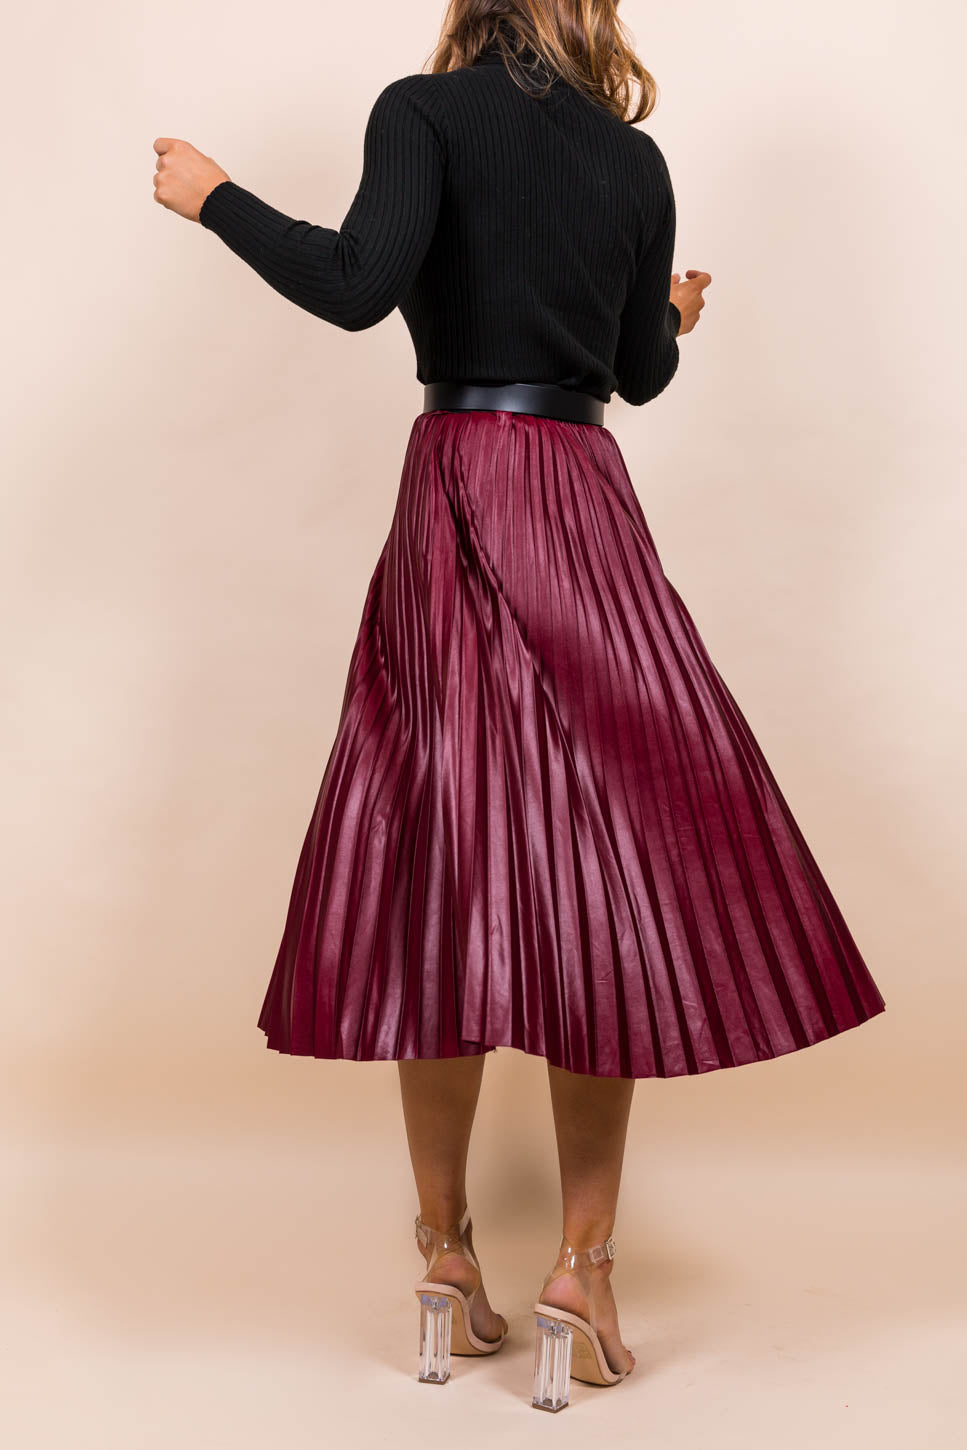 Pleat Me Halfway - Midi Skirt In WINE